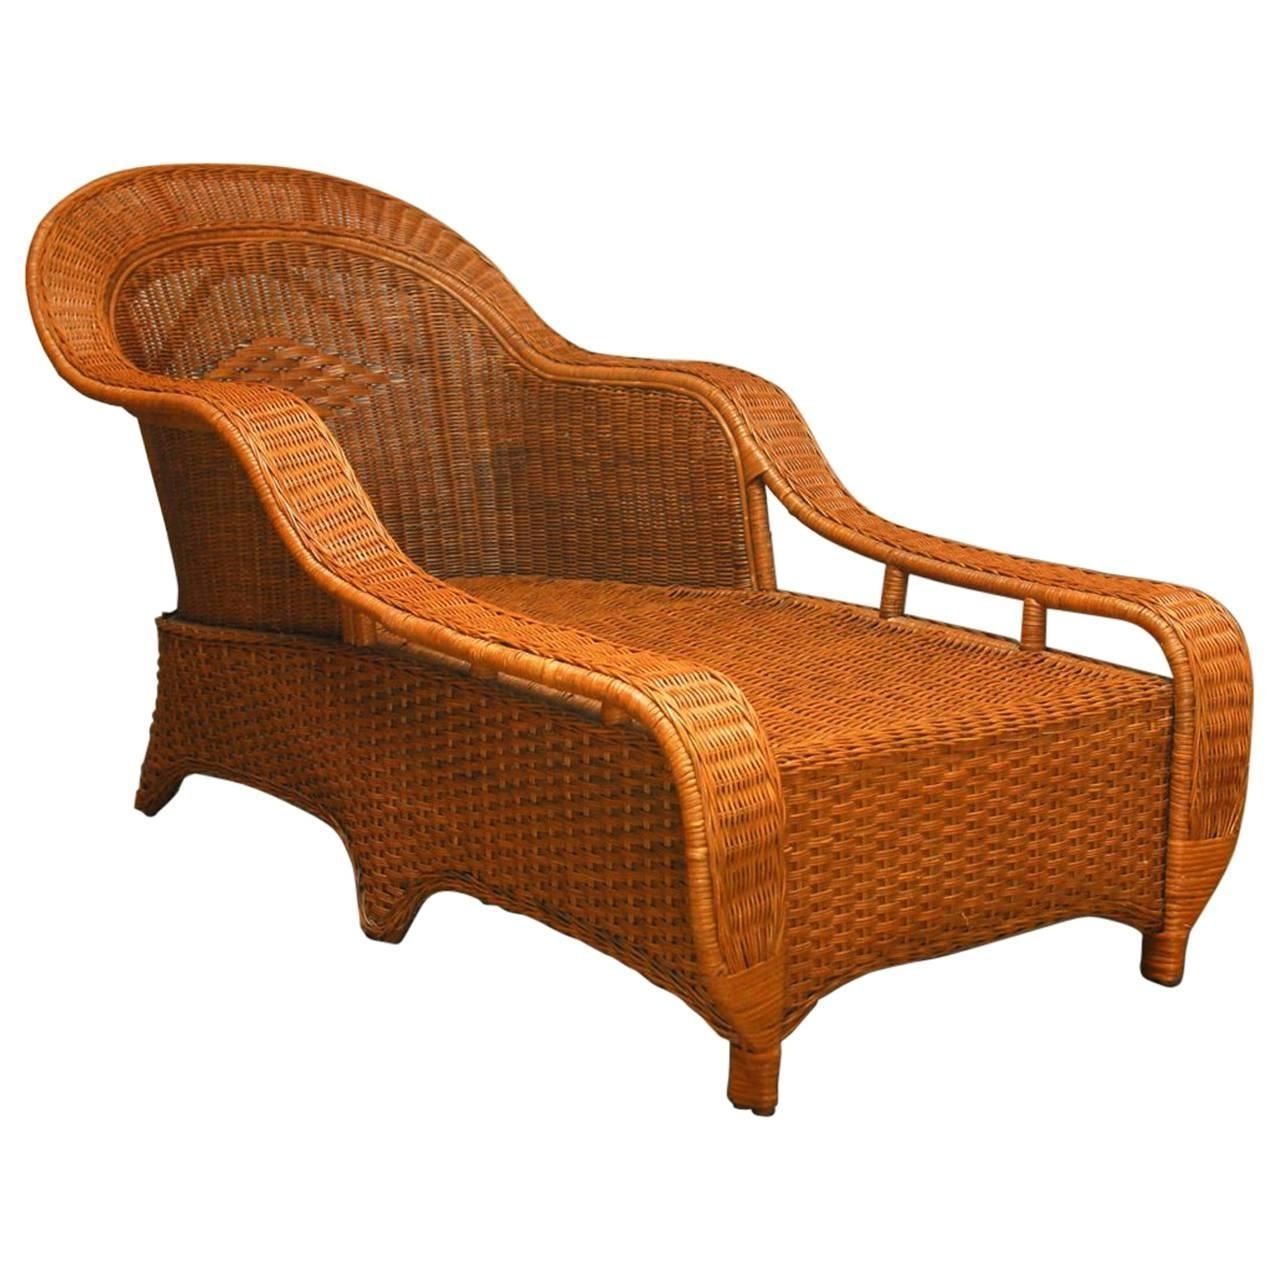 Latest Wicker Chaises Pertaining To Style Wicker Chaise Longuepalecek For Sale At 1Stdibs (View 4 of 15)